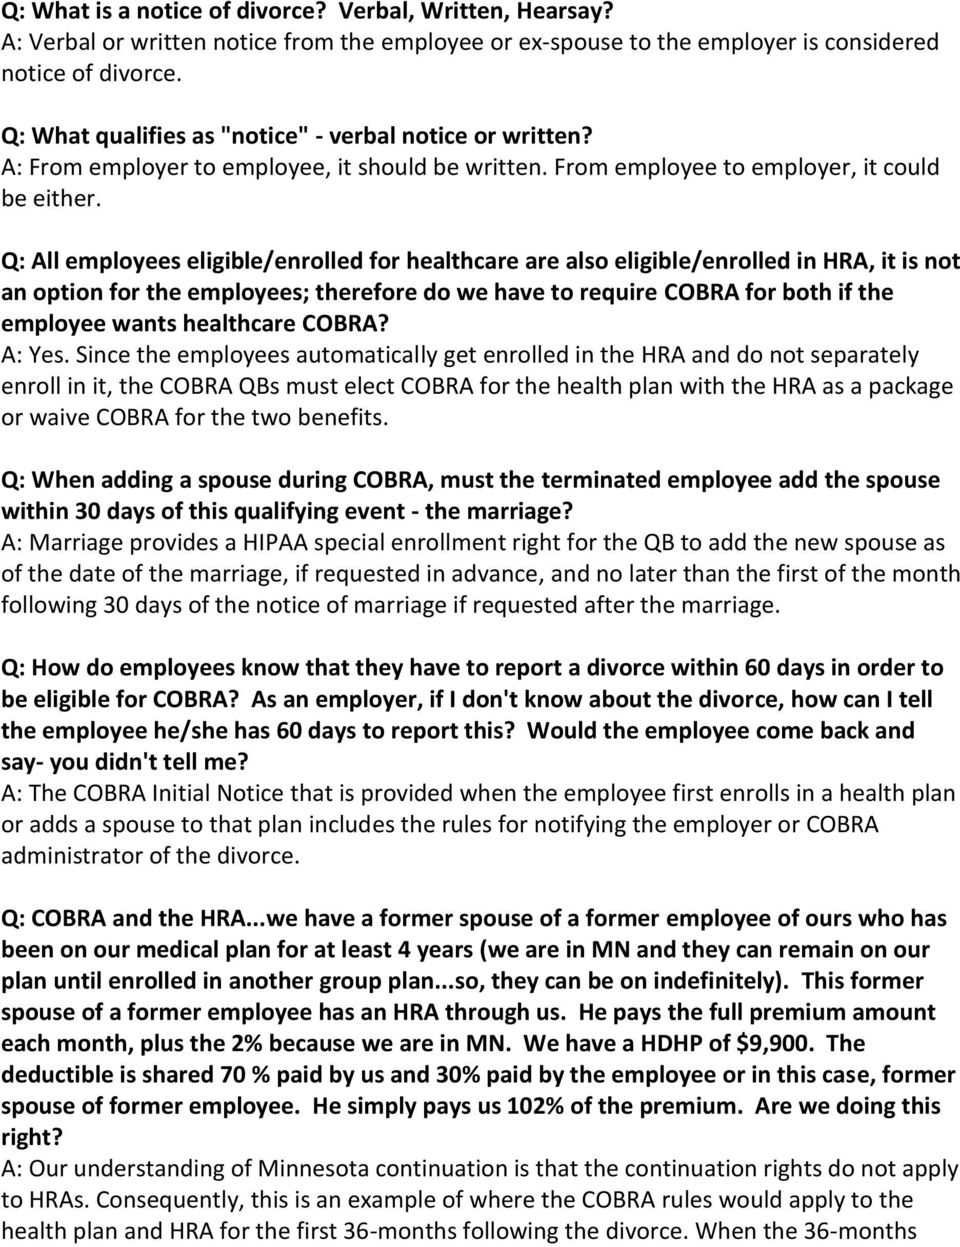 Q: All employees eligible/enrolled for healthcare are also eligible/enrolled in HRA, it is not an option for the employees; therefore do we have to require COBRA for both if the employee wants